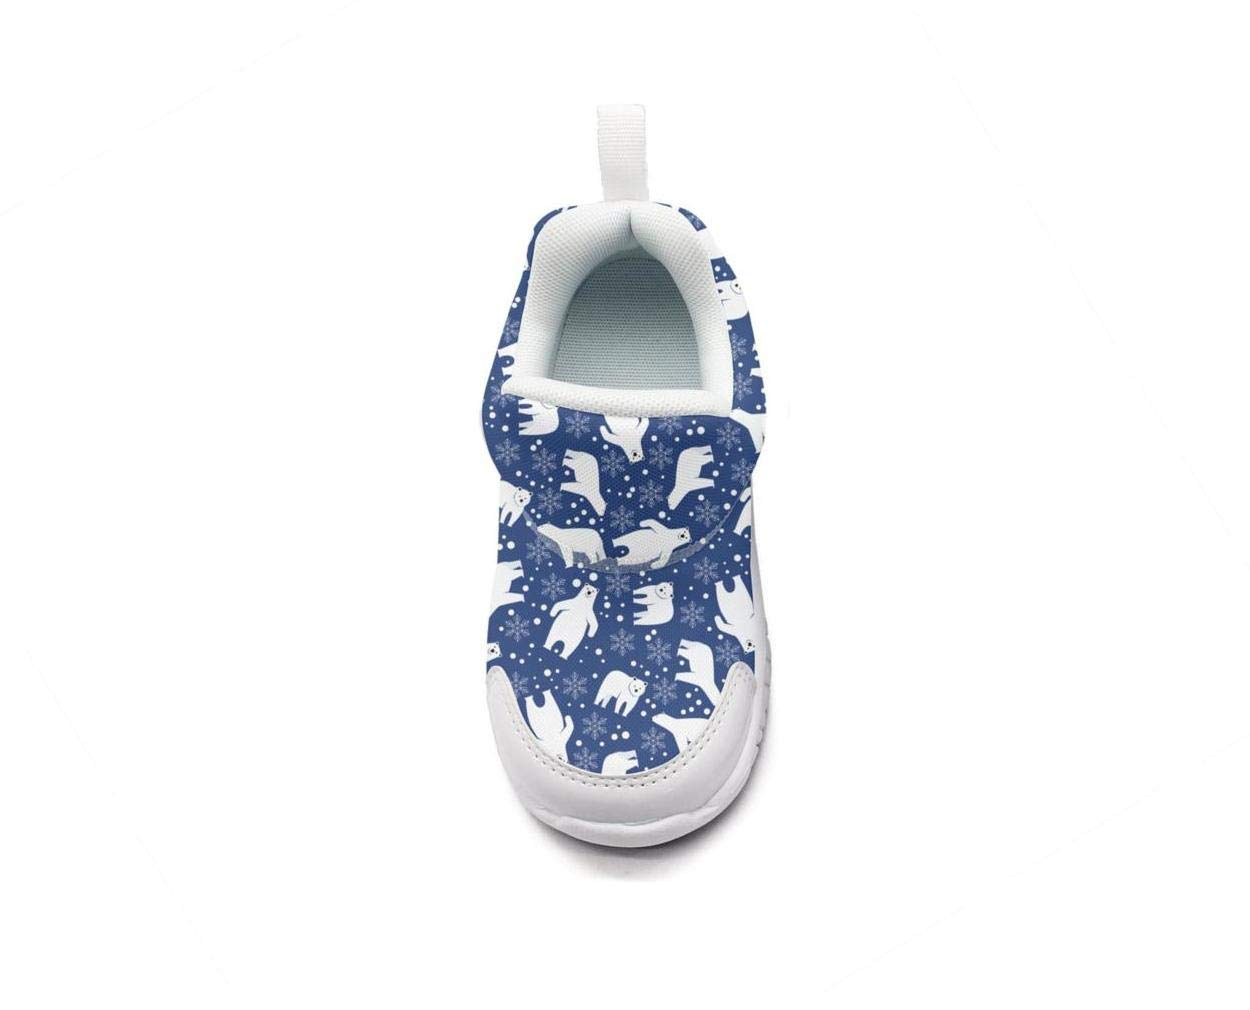 ONEYUAN Children Large Polar Bear with Snow Kid Casual Lightweight Sport Shoes Sneakers Running Shoes